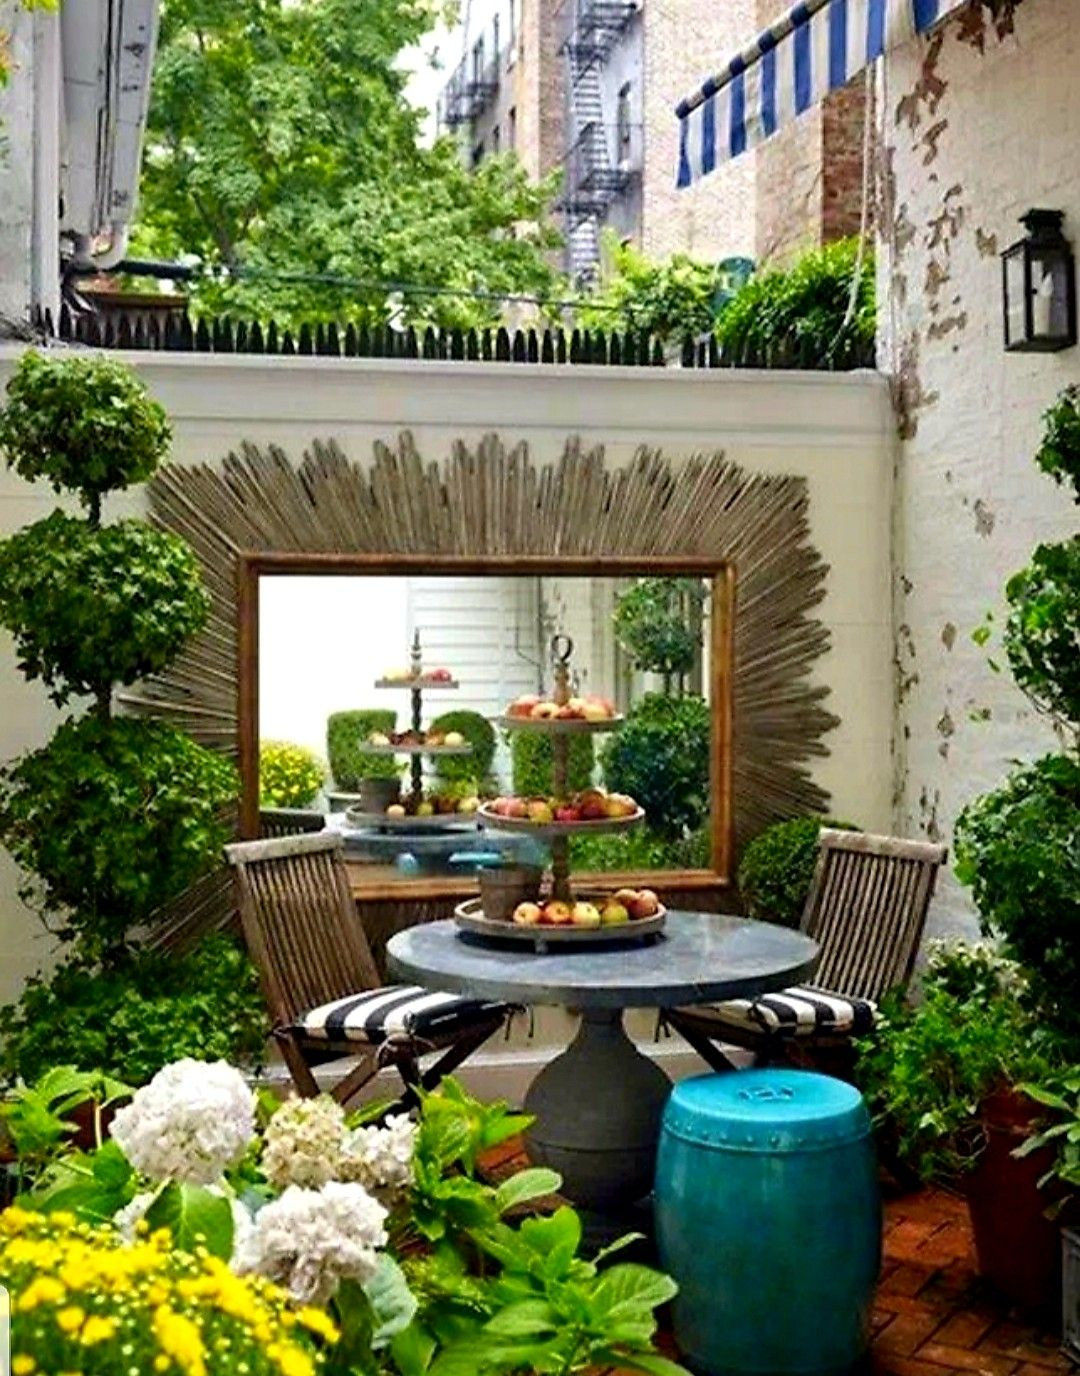 Pin by Sherry Allnutt on Patio Ideas | Apartment patio ...